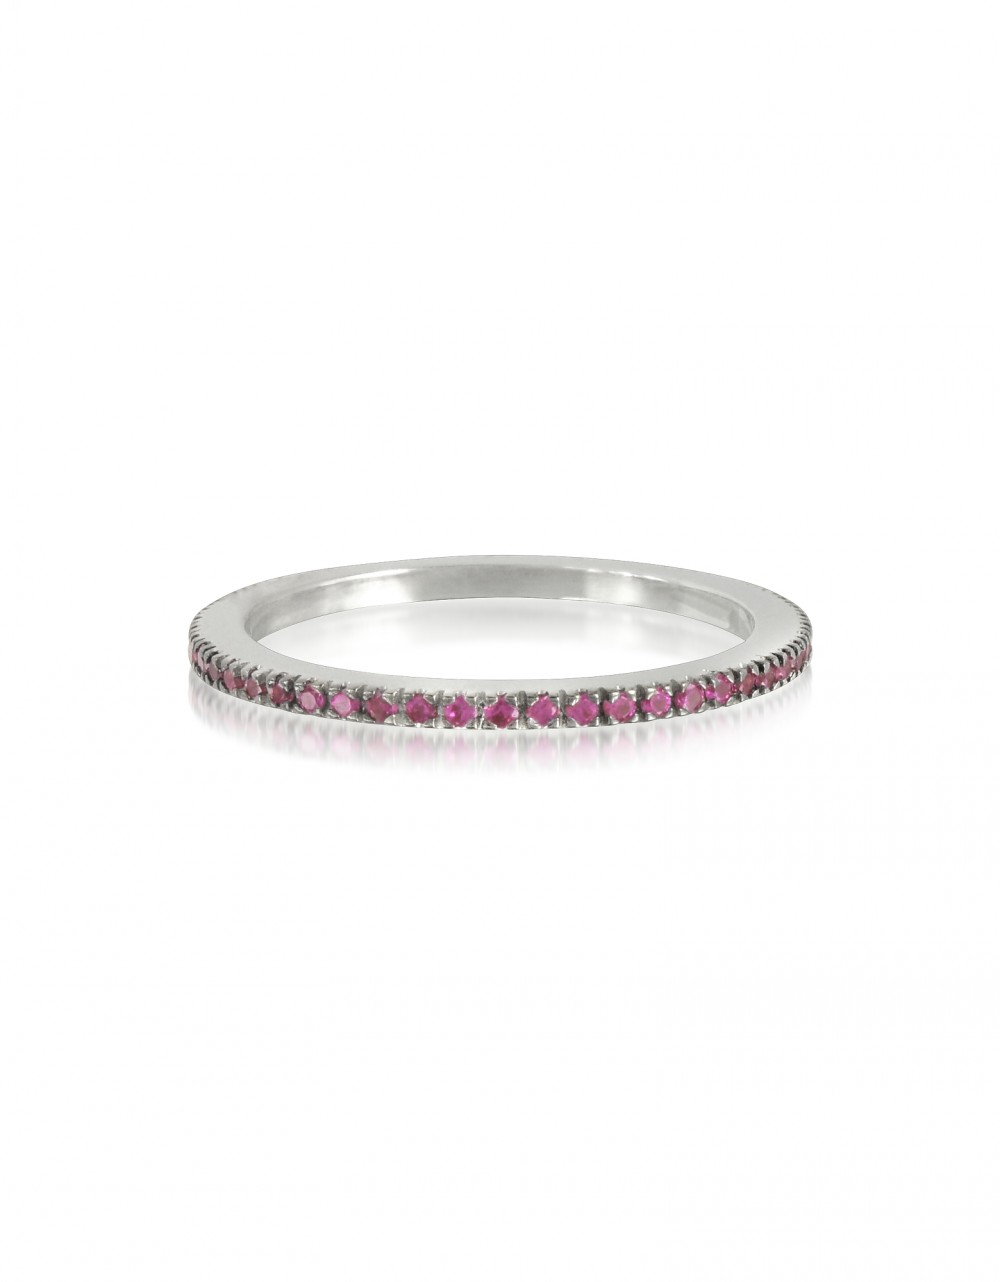 Forzieri Rings Natural Pink Sapphire Eternity Band Ring